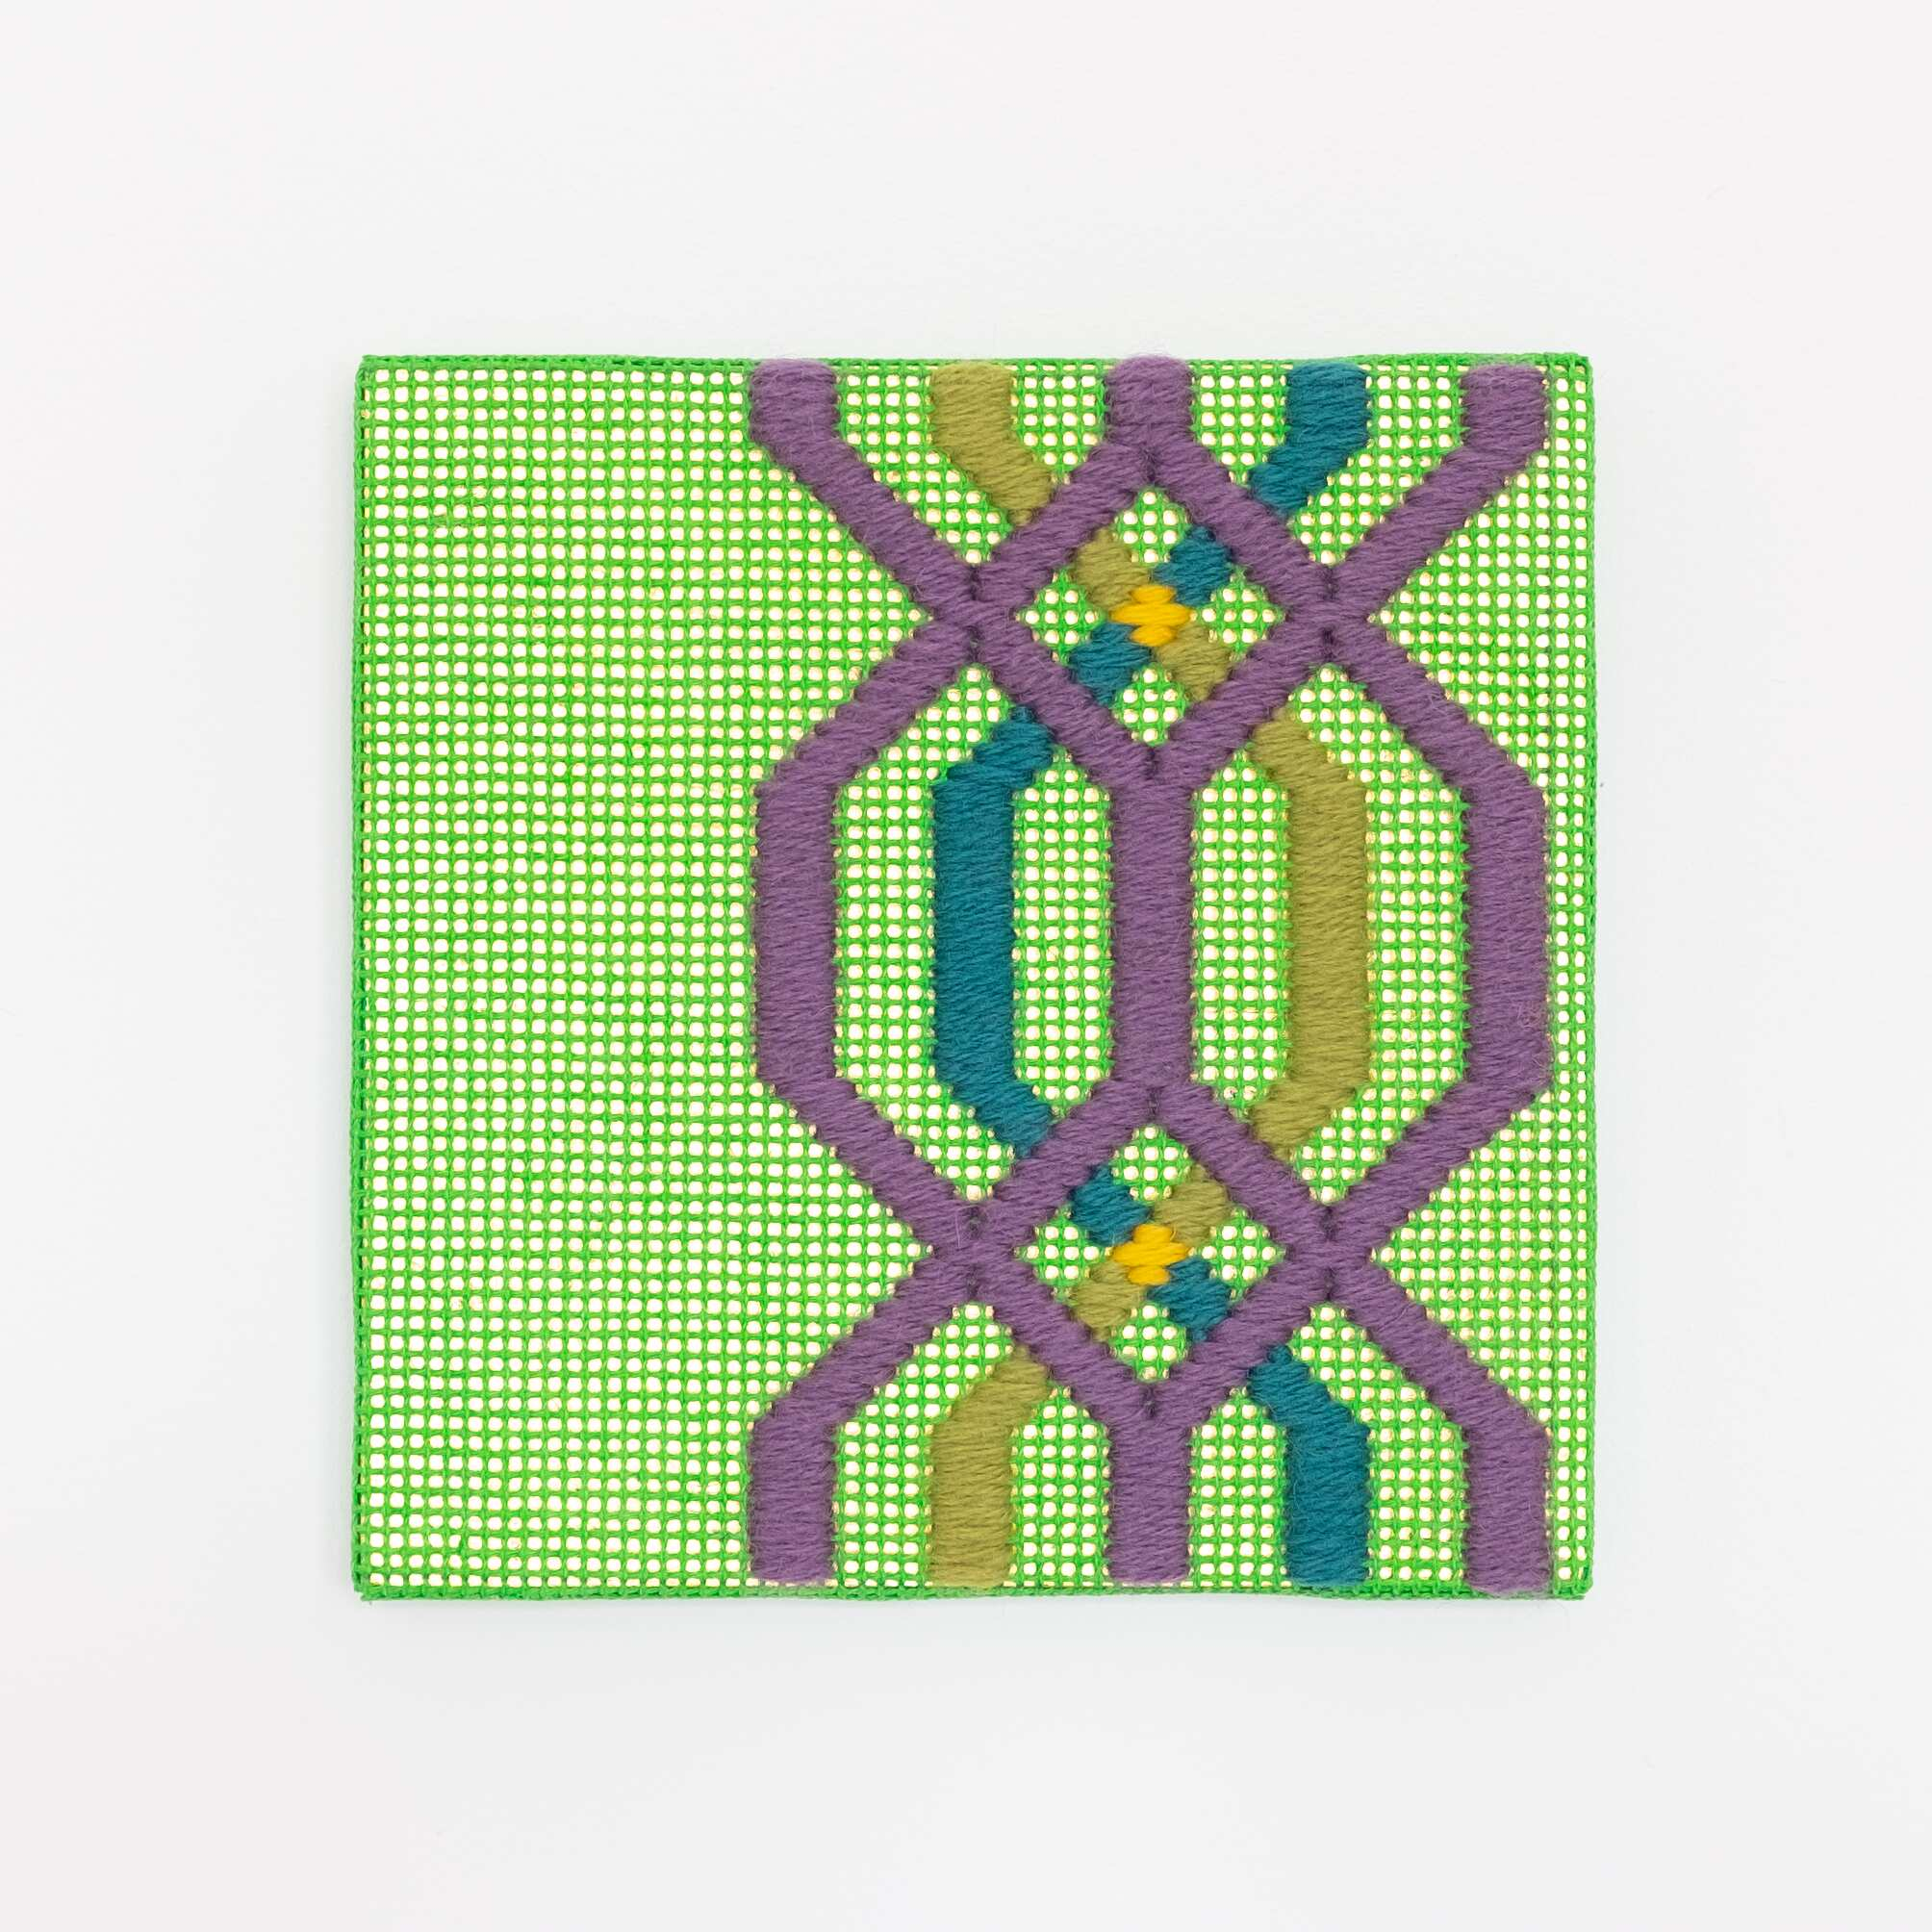 Border fragment [purple-teal-green on green], Hand-embroidered wool thread and acrylic paint on canvas over gilded panel, 2021